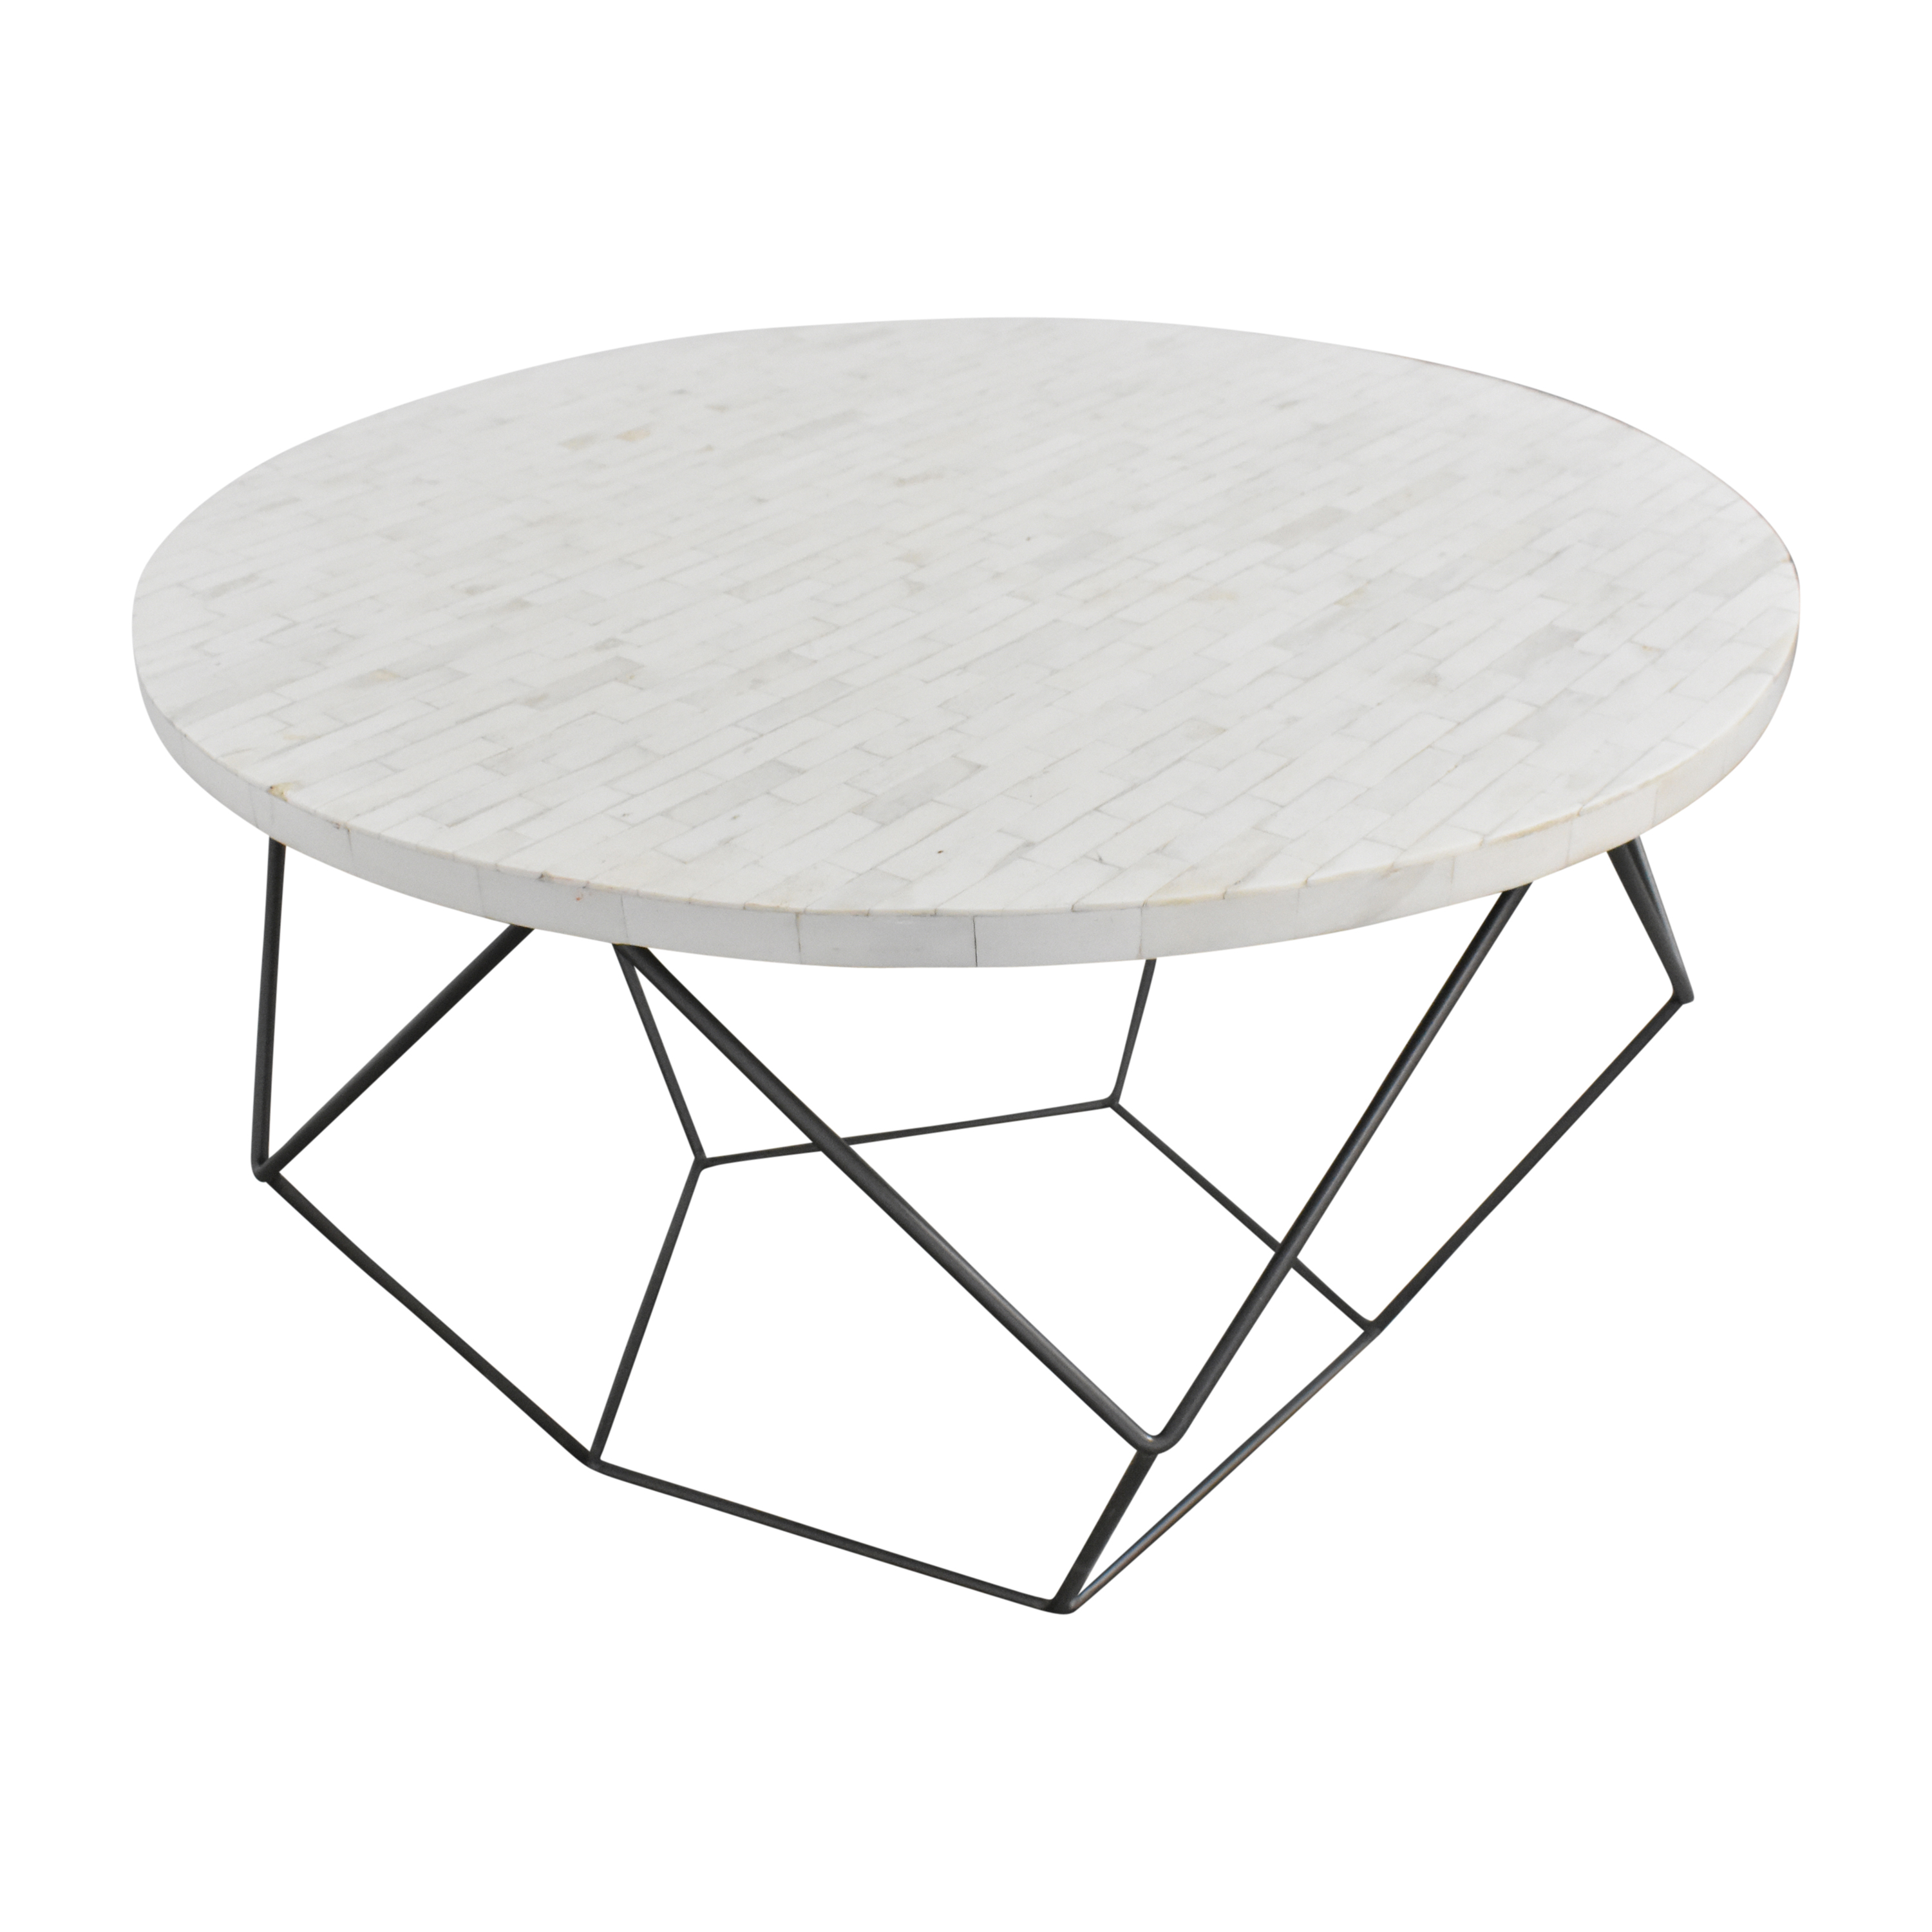 West Elm West Elm Origami Coffee Table white